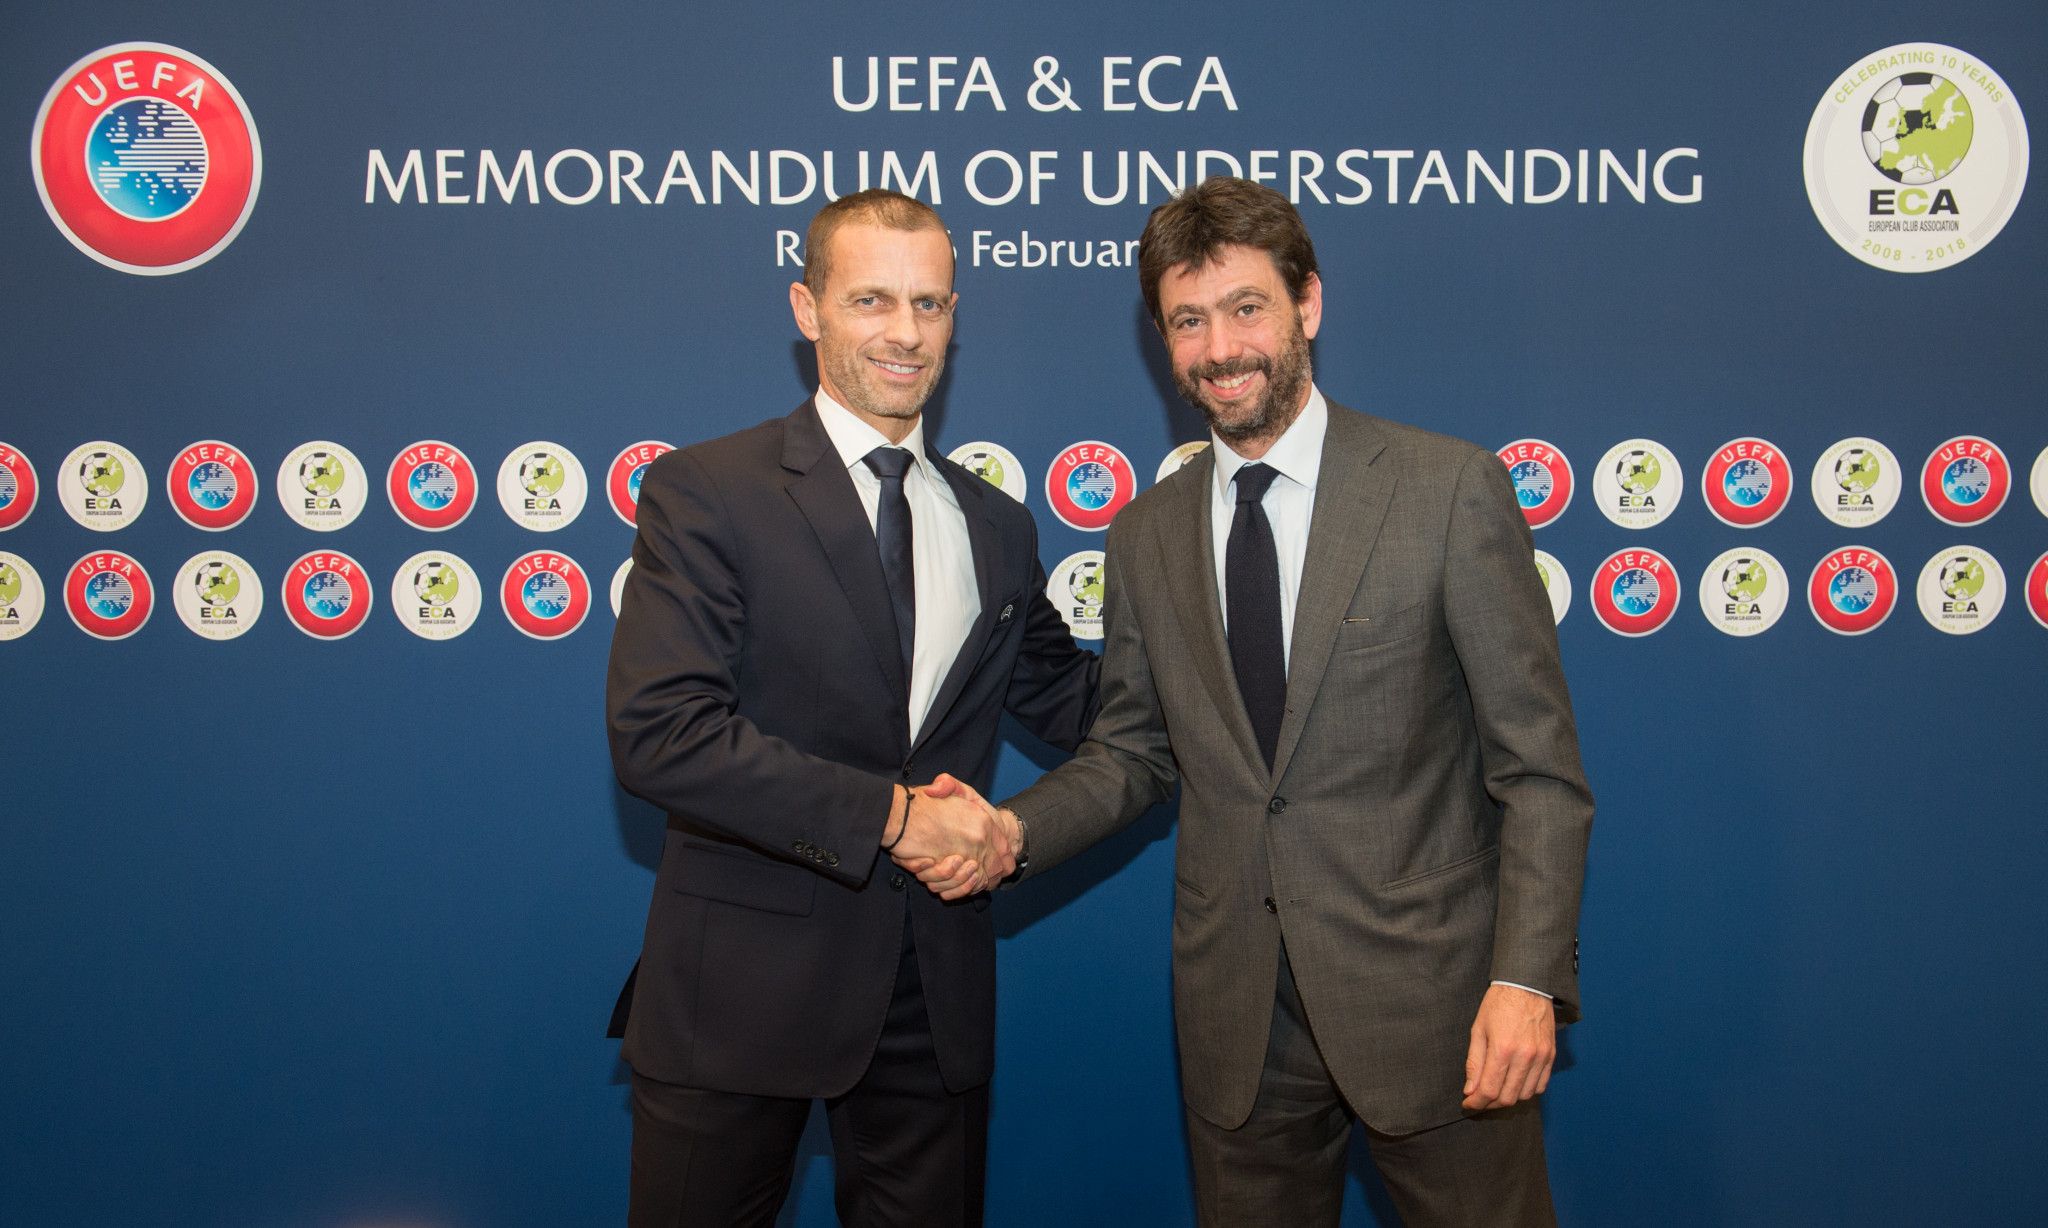 A renewed Memorandum of Understanding was signed by UEFA and the European Club Association in Rome today ©UEFA